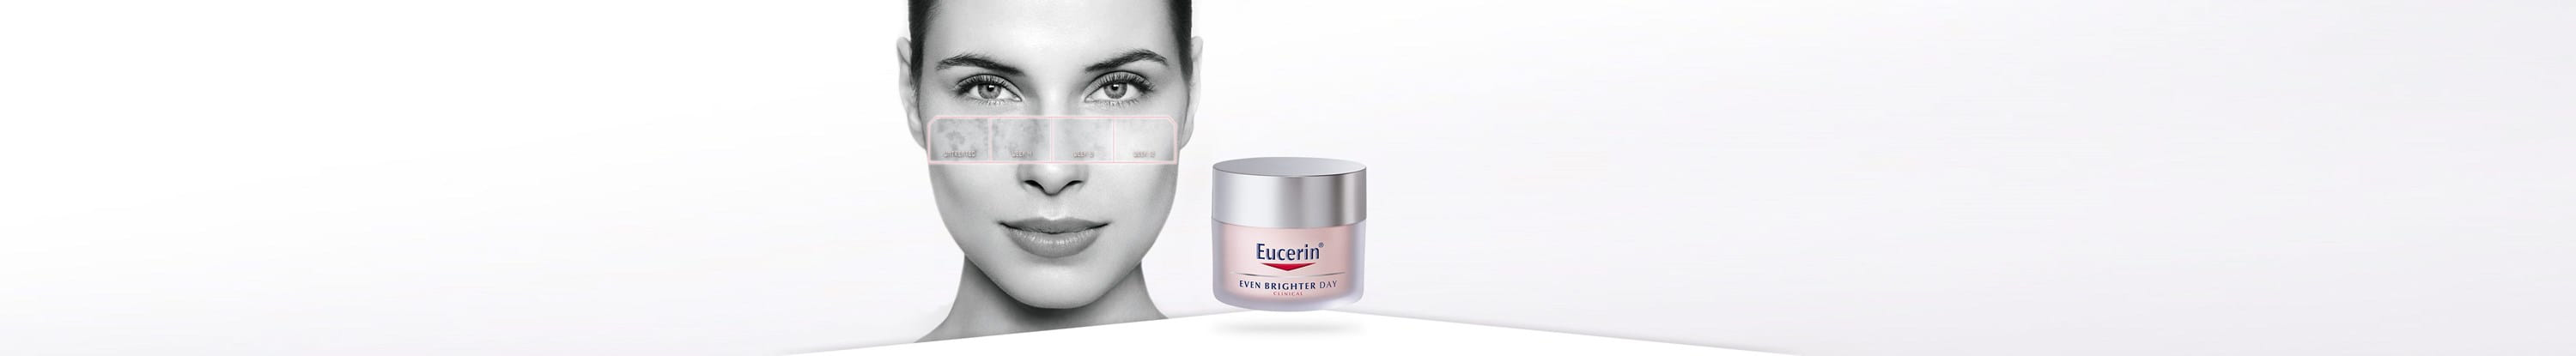 Gama de productos Eucerin Even Brighter